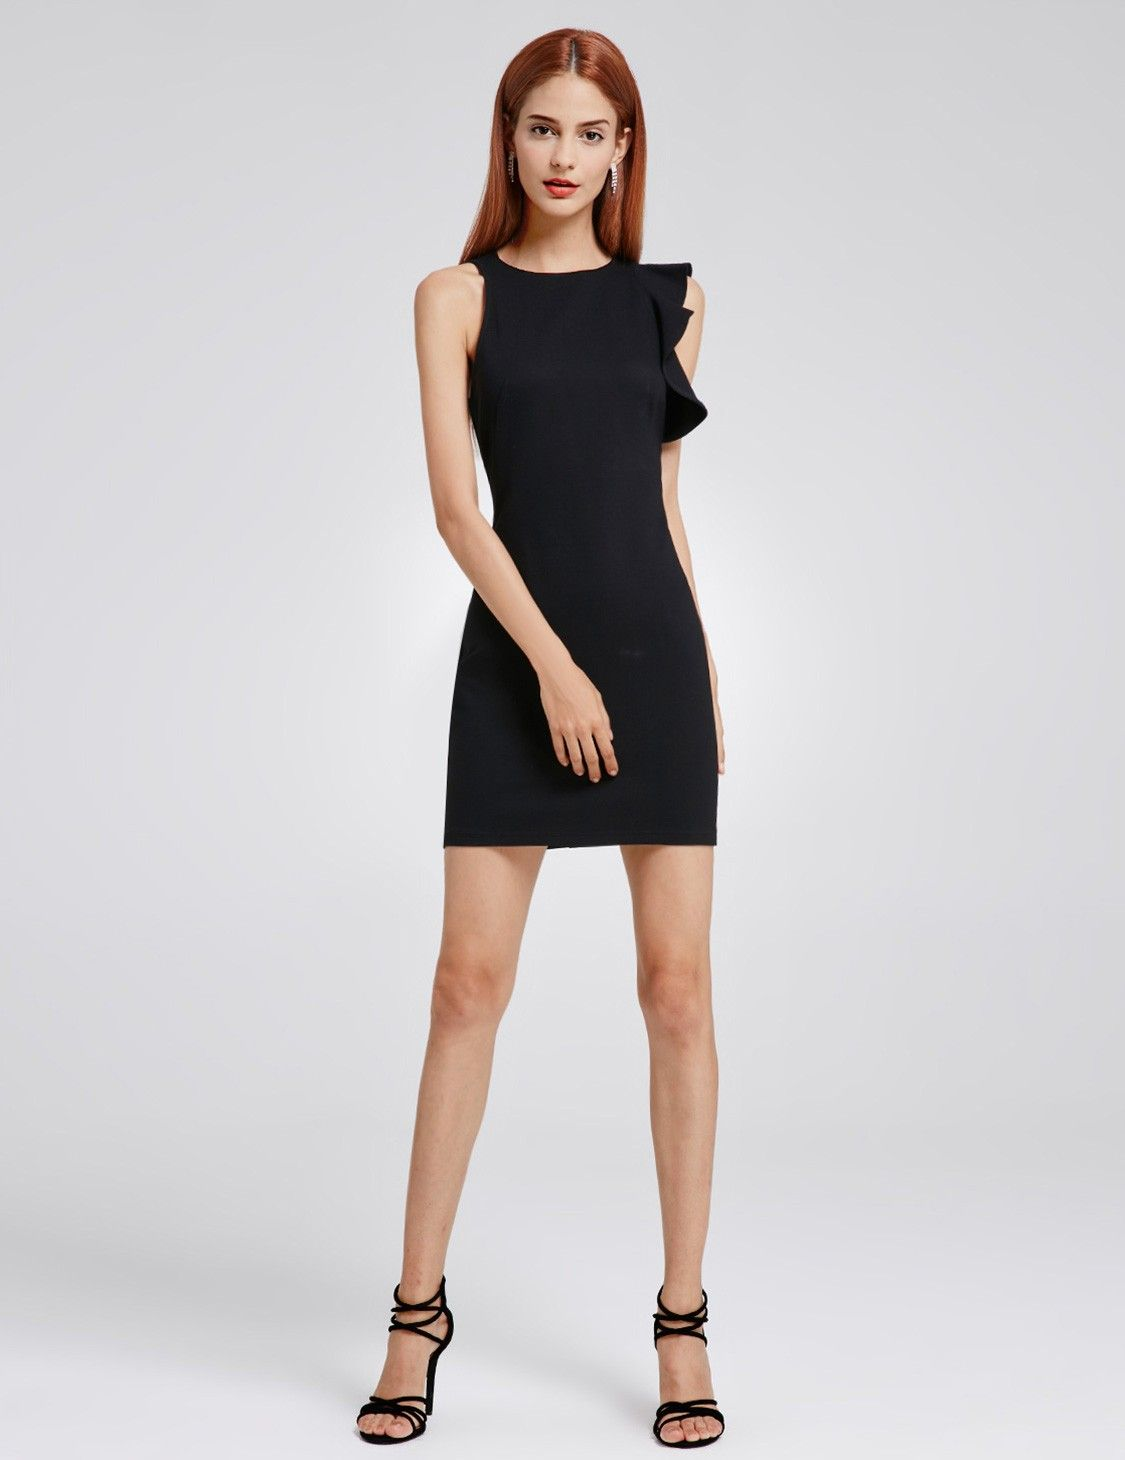 Unique short fitted little black dress in homecoming dresses